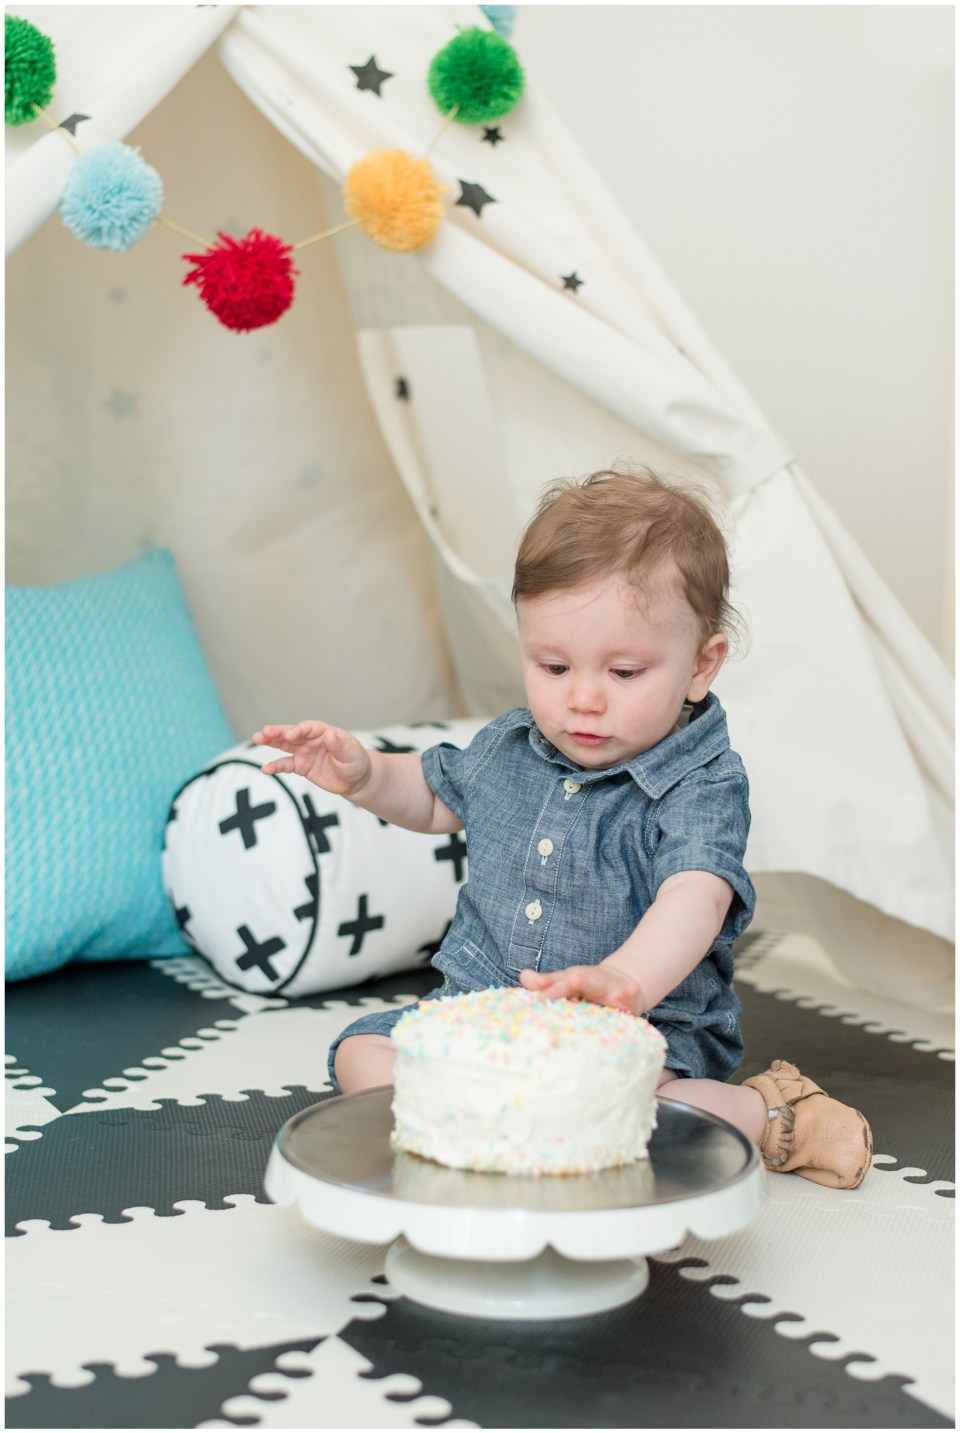 Kingwood child photographer - Houston cake smash portrait session